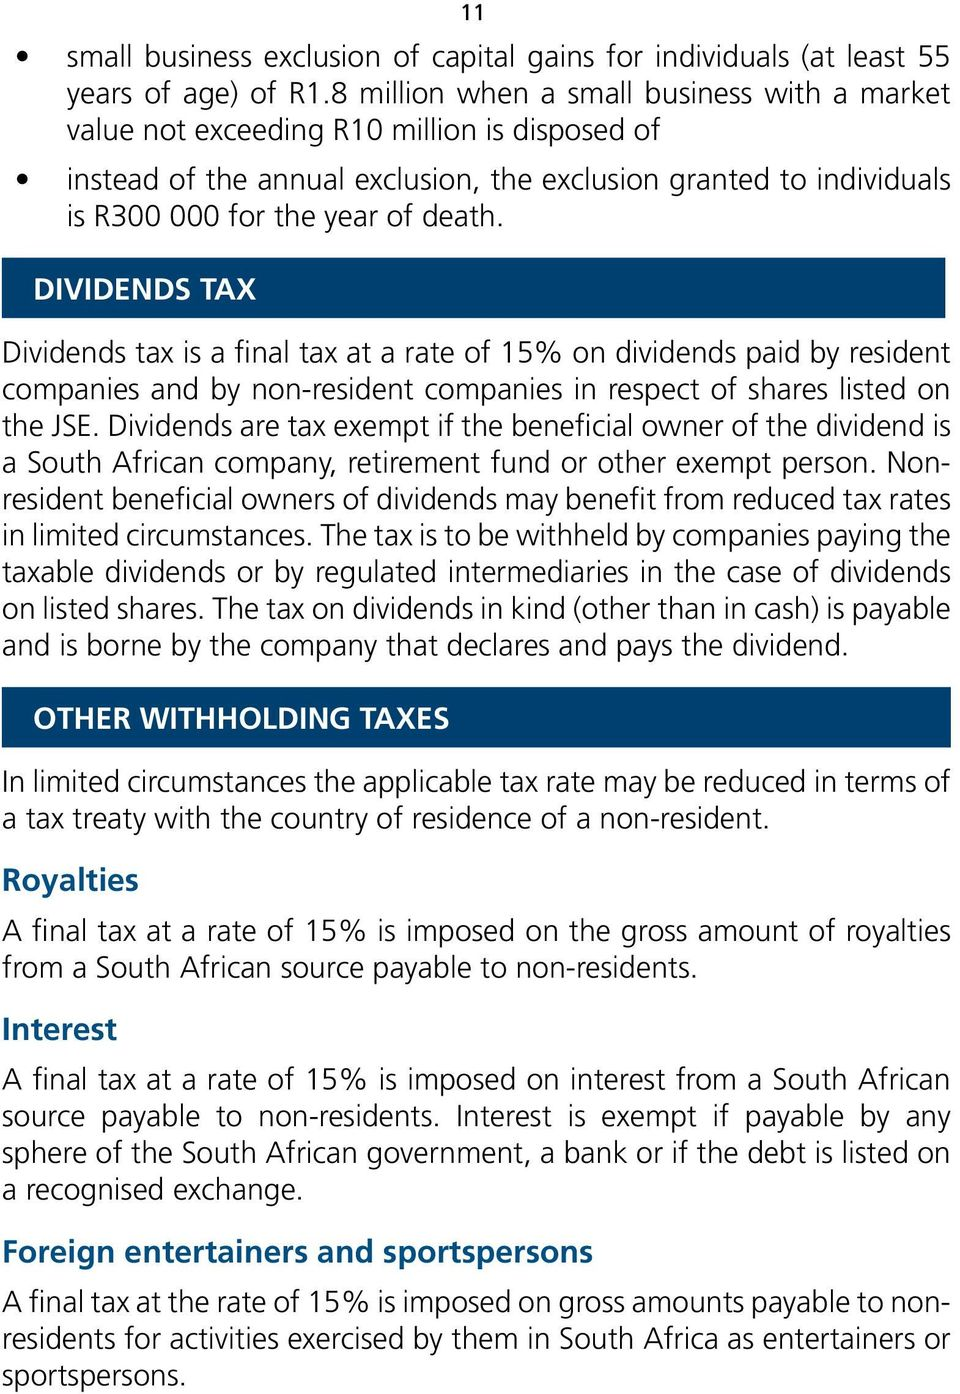 DIVIDENDS TAX Dividends tax is a final tax at a rate of 15% on dividends paid by resident companies and by non-resident companies in respect of shares listed on the JSE.